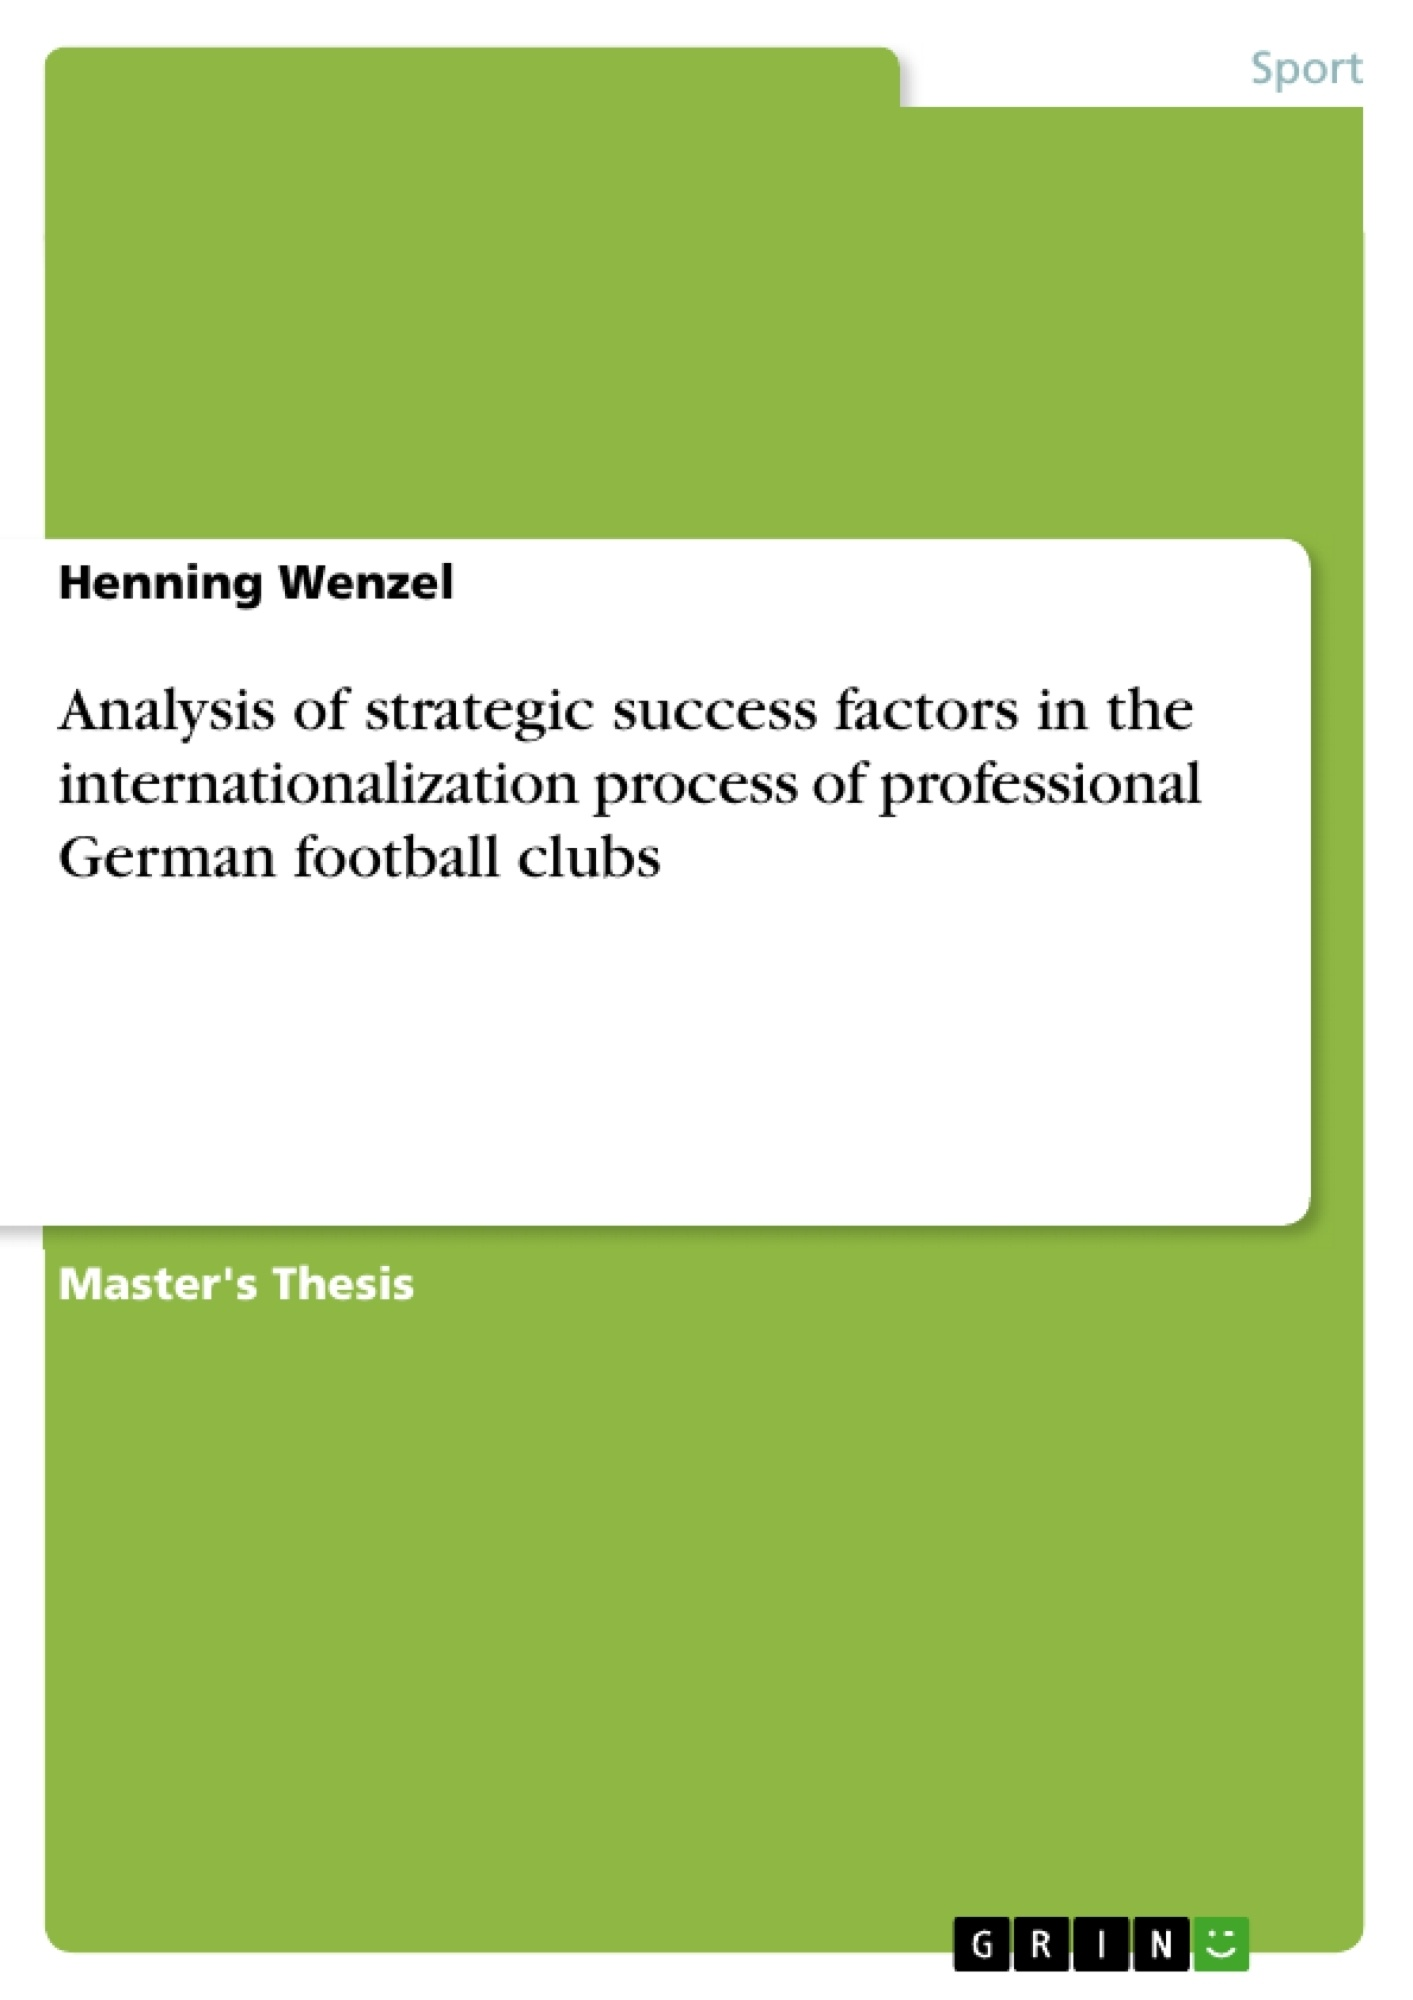 thesis international business pdf